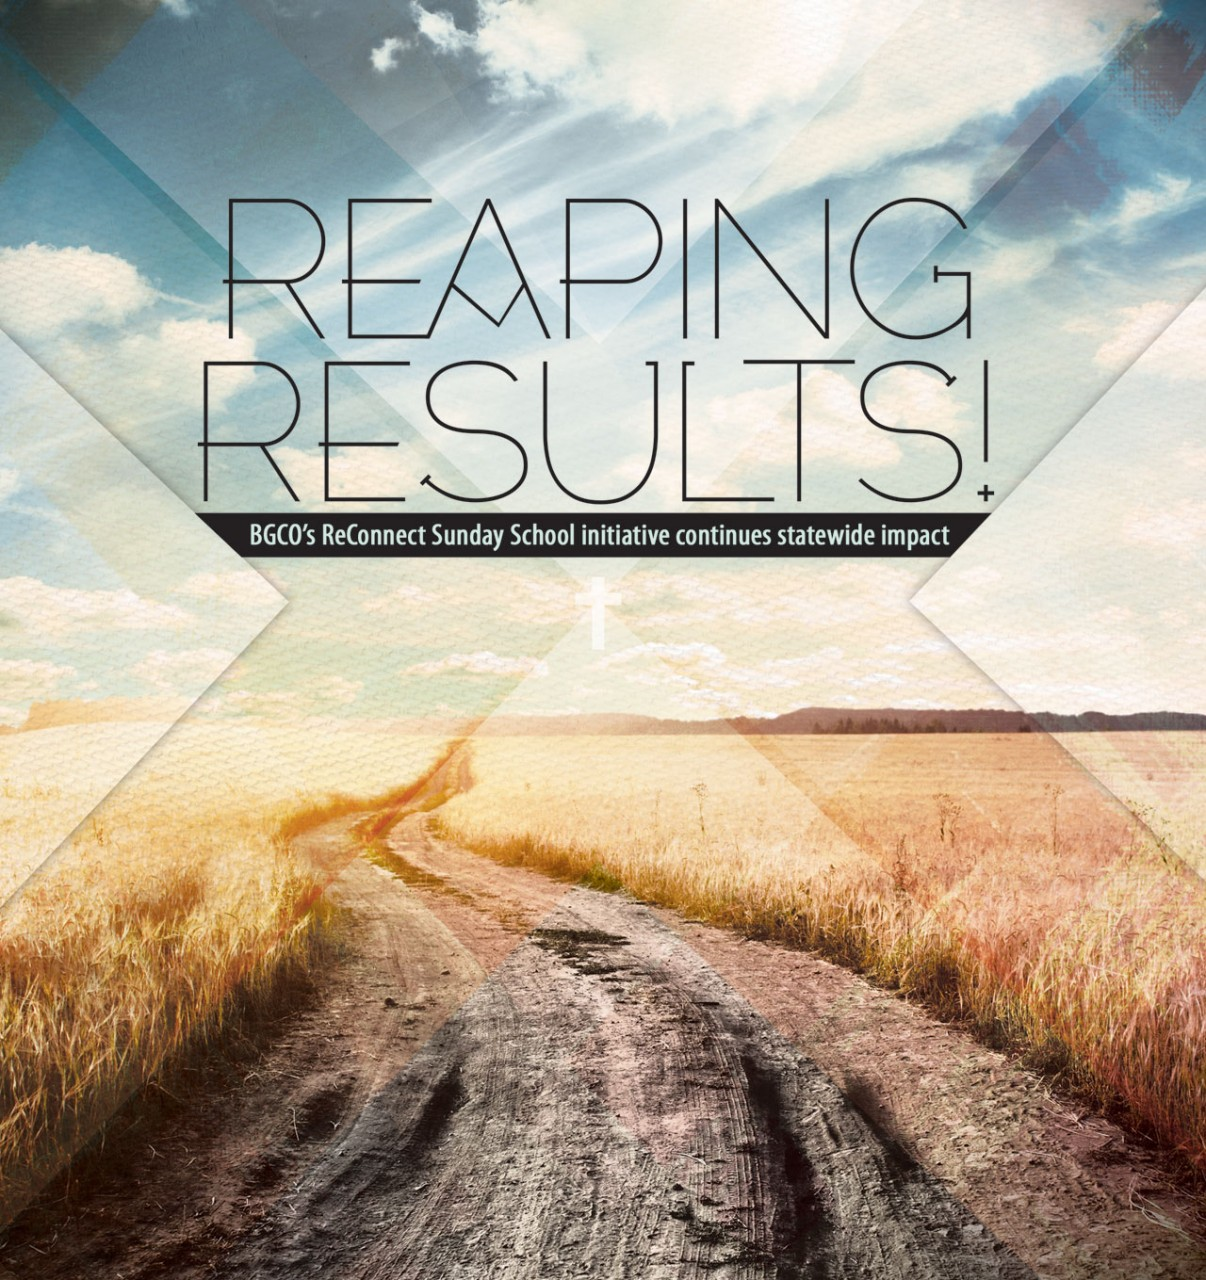 Reaping results!